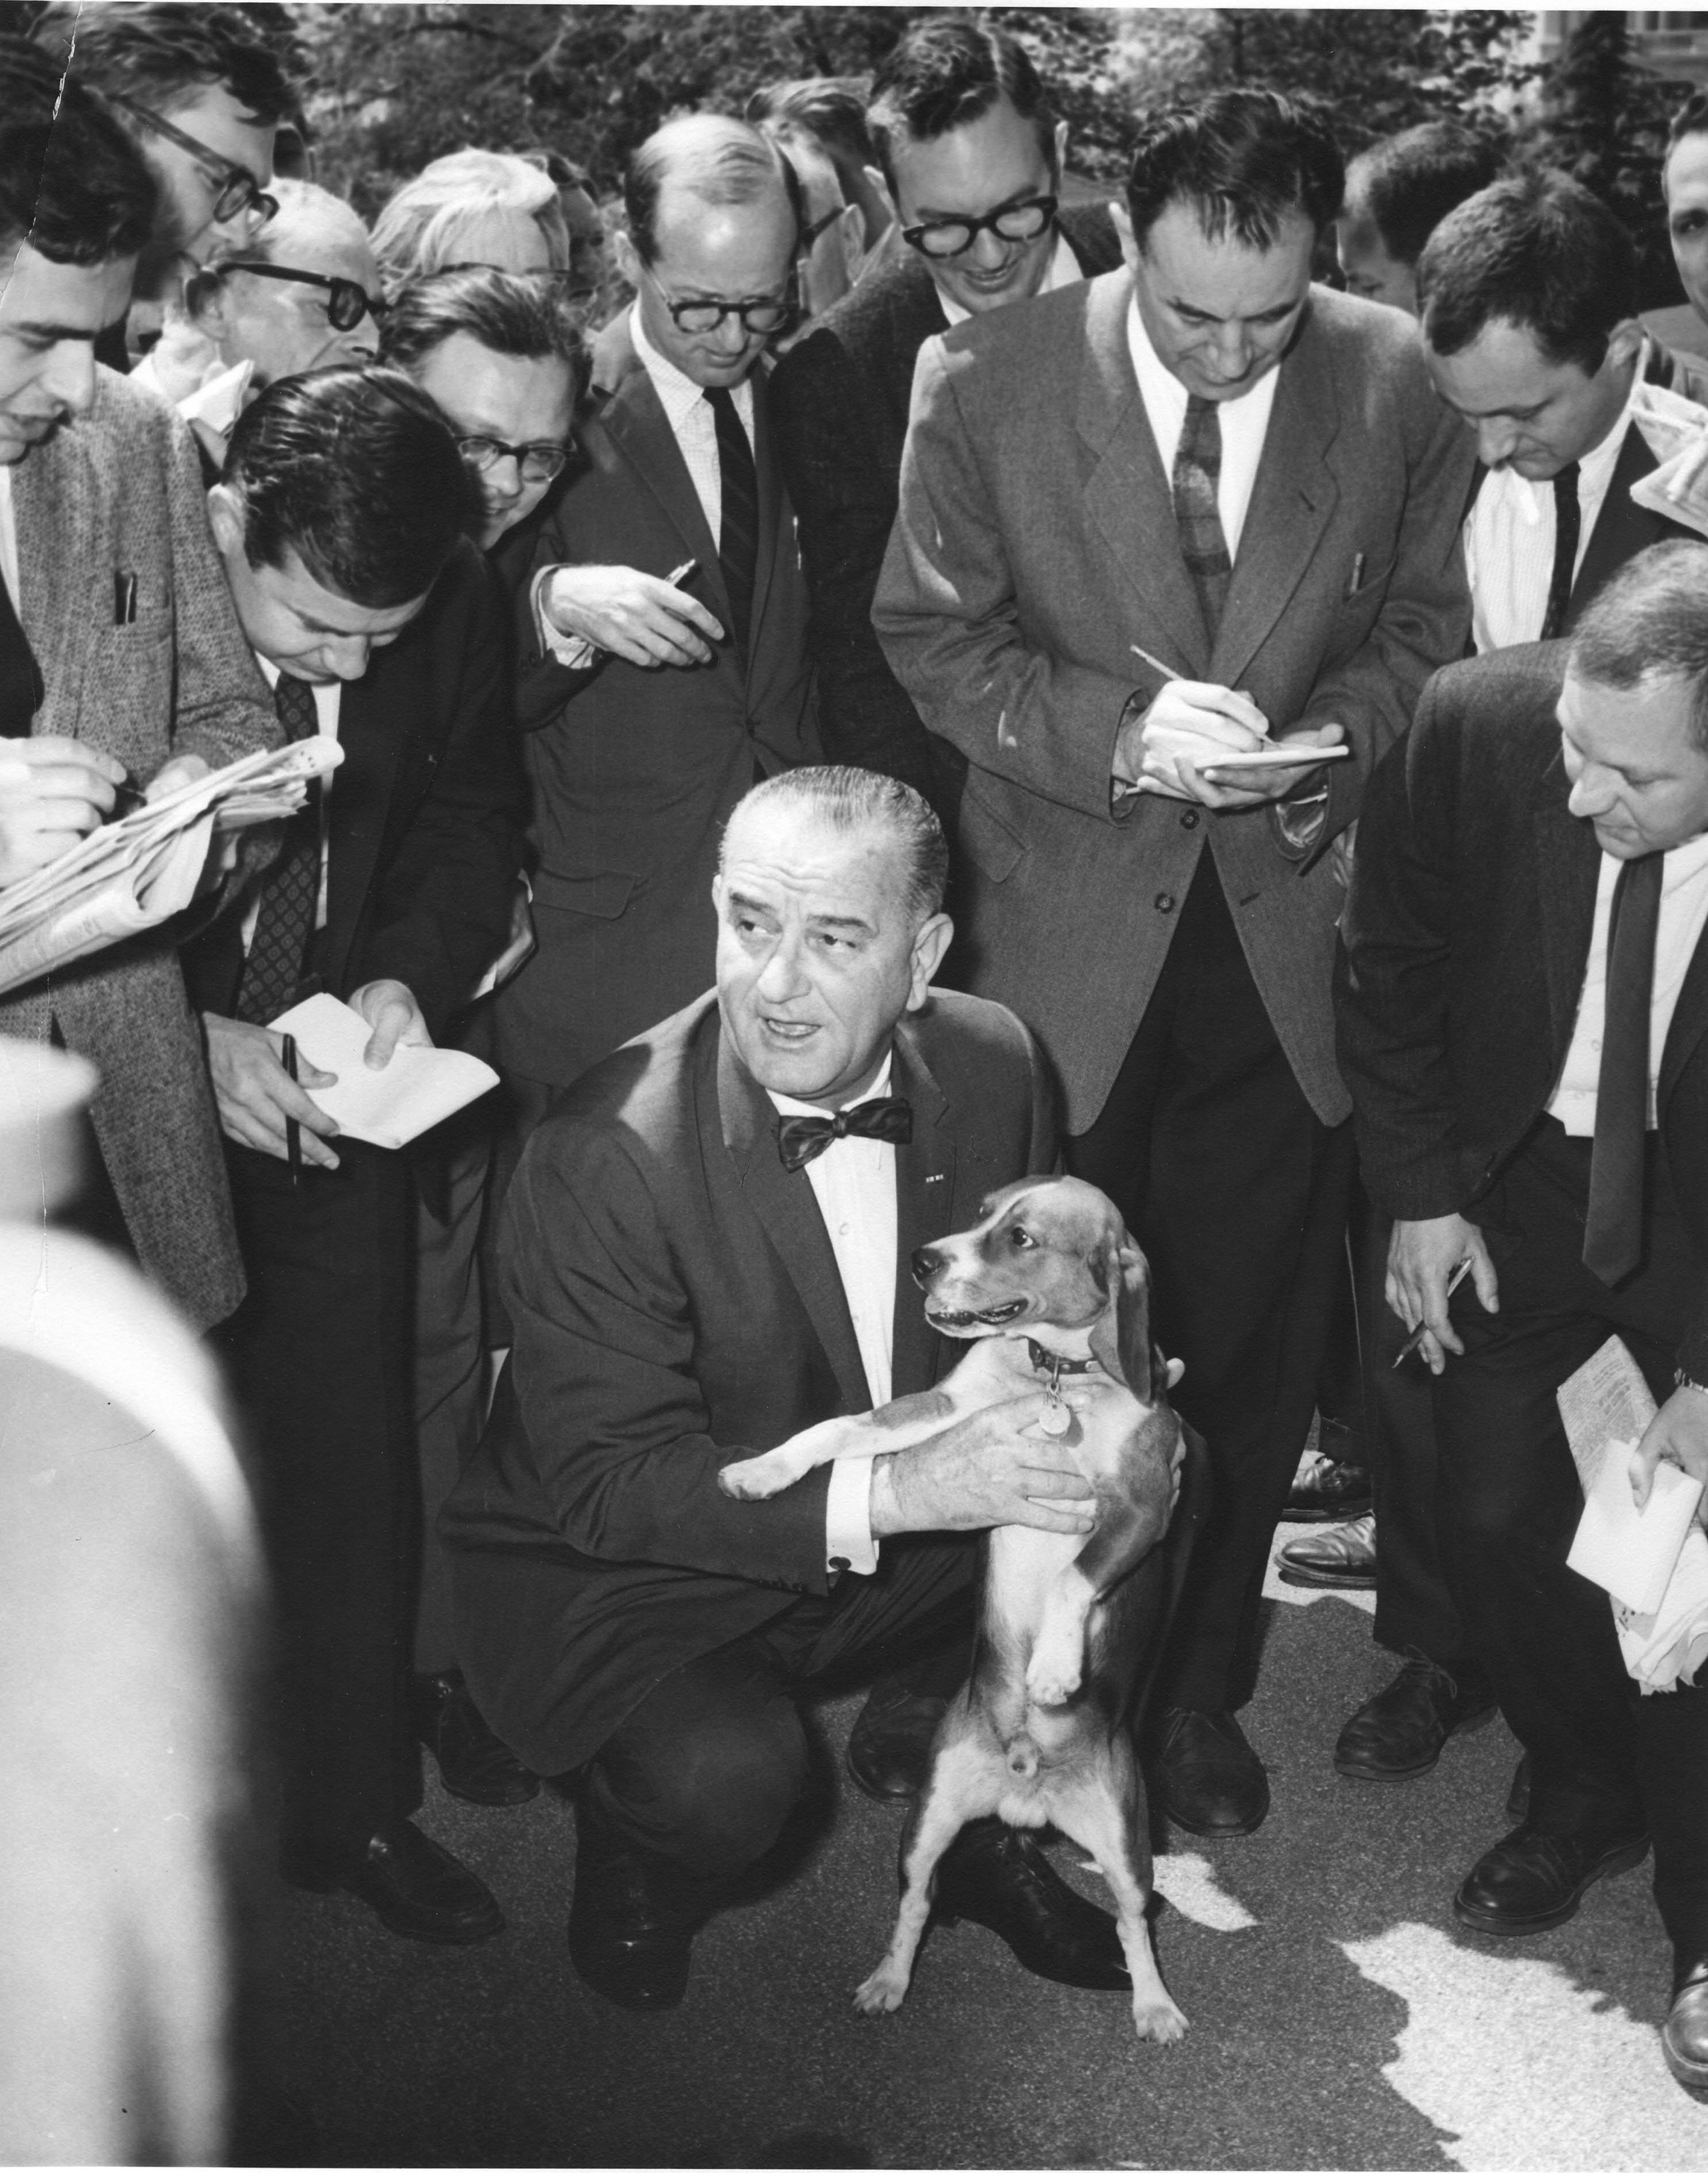 Lyndon Johnson holds one of his beagles, named Him, as he speaks with members of the White House press corps in Washington D.C., May 2 1964.